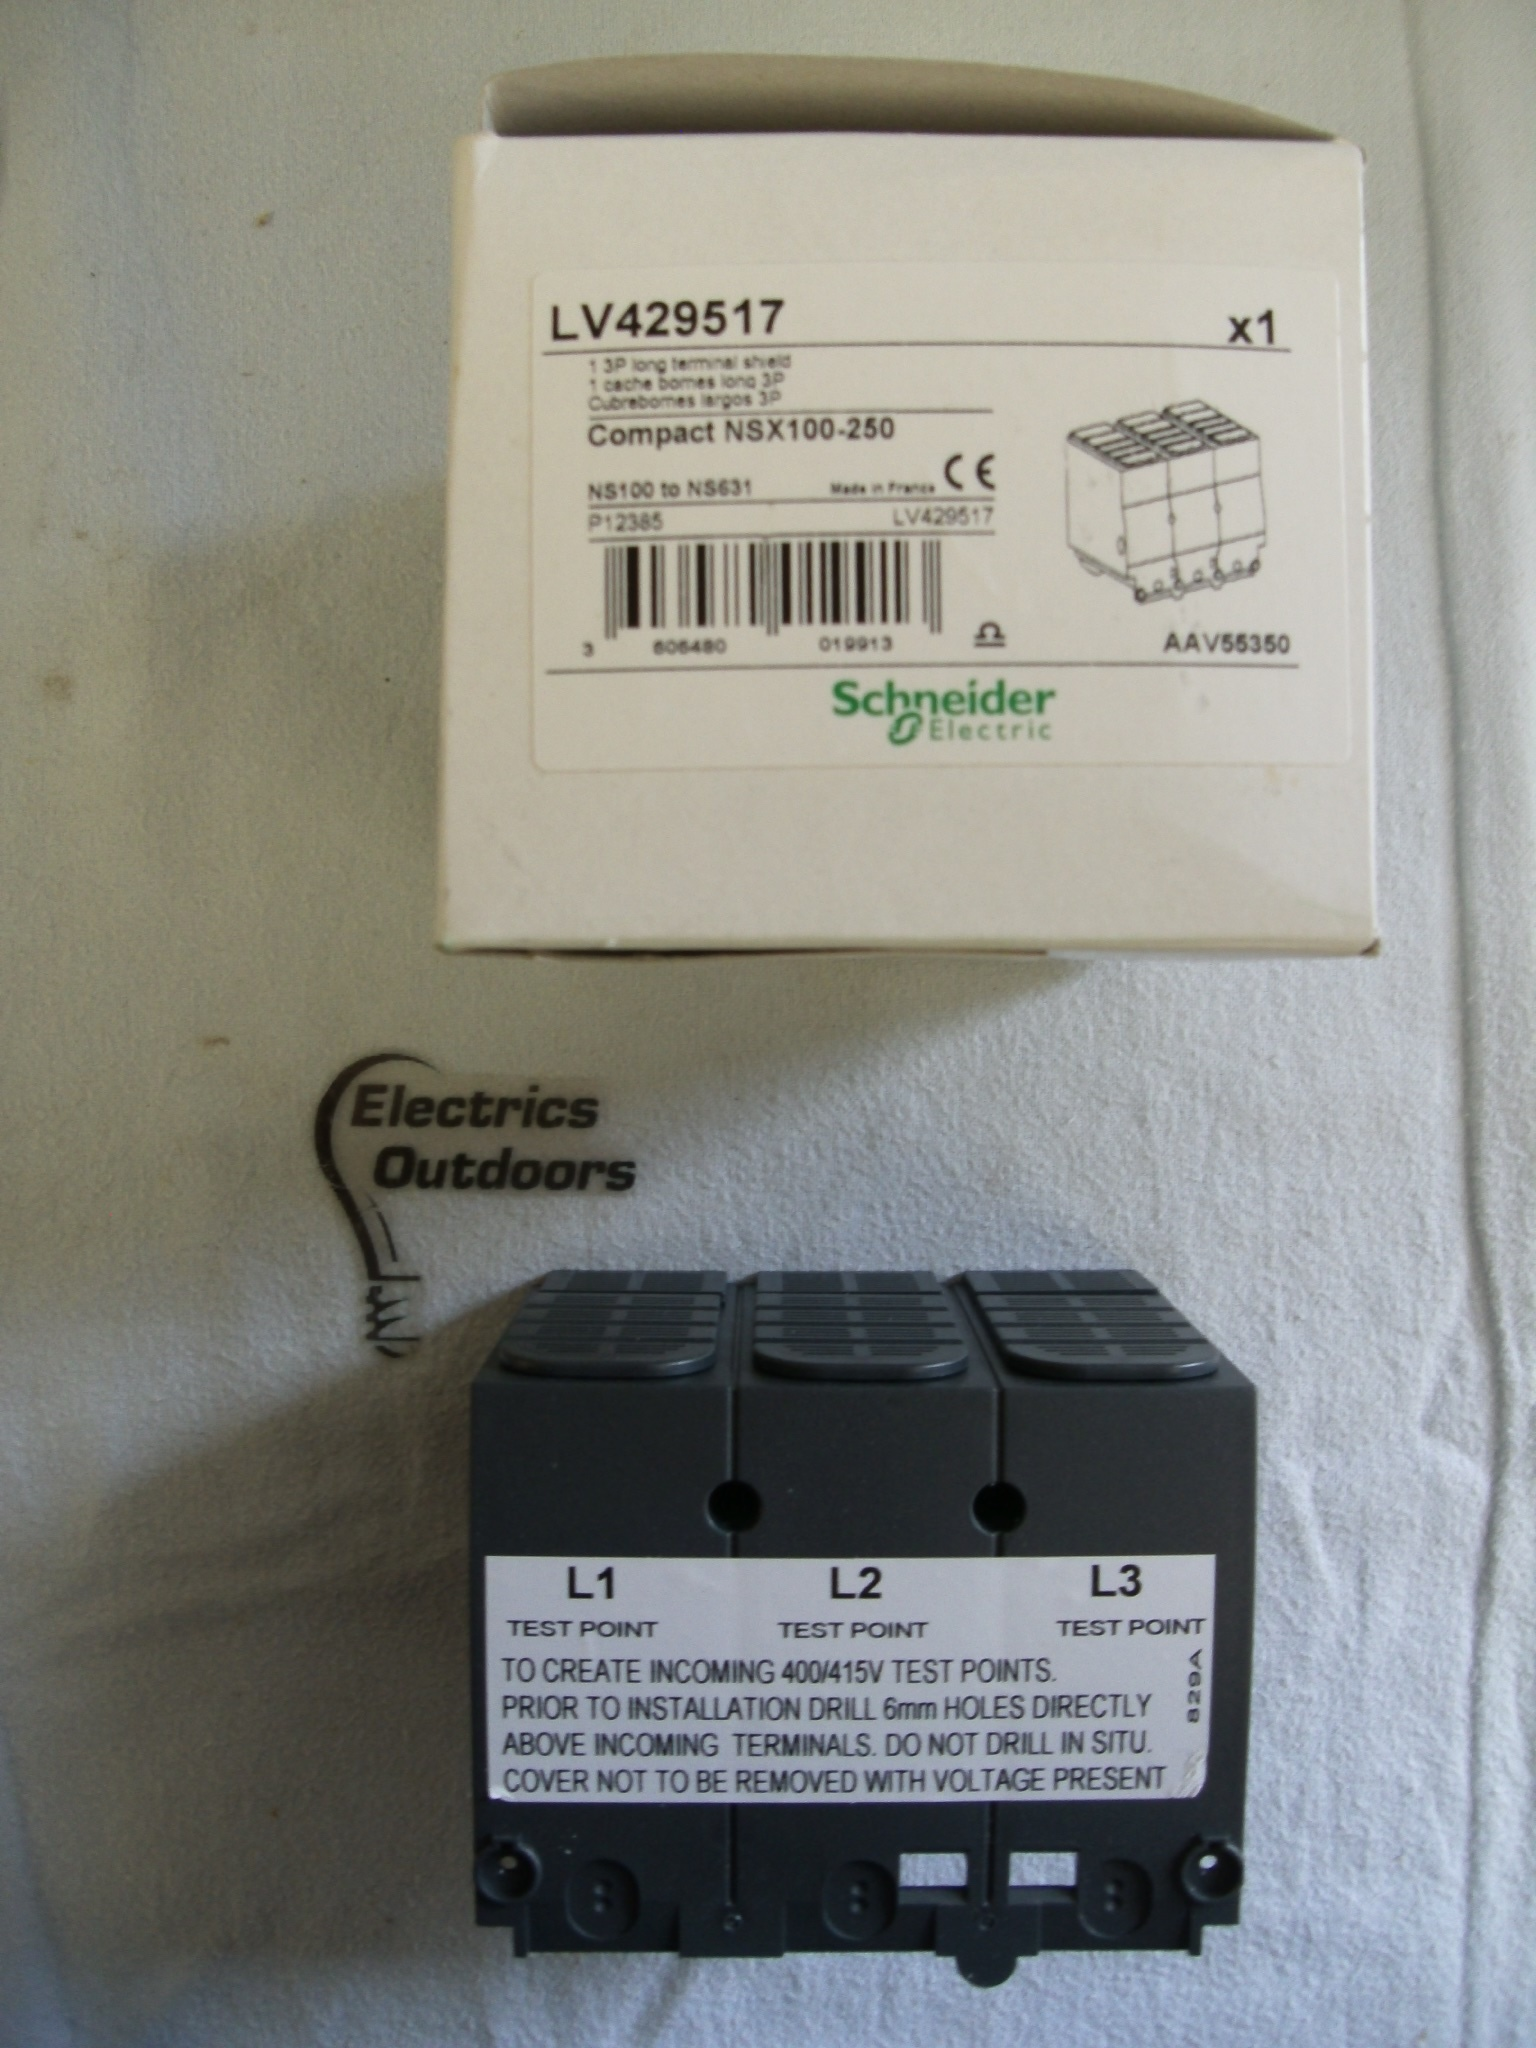 SCHNEIDER ELECTRIC 1 THREE POLE LONG TERMINAL SHIELD COMPACT NSX100 250 LV429517